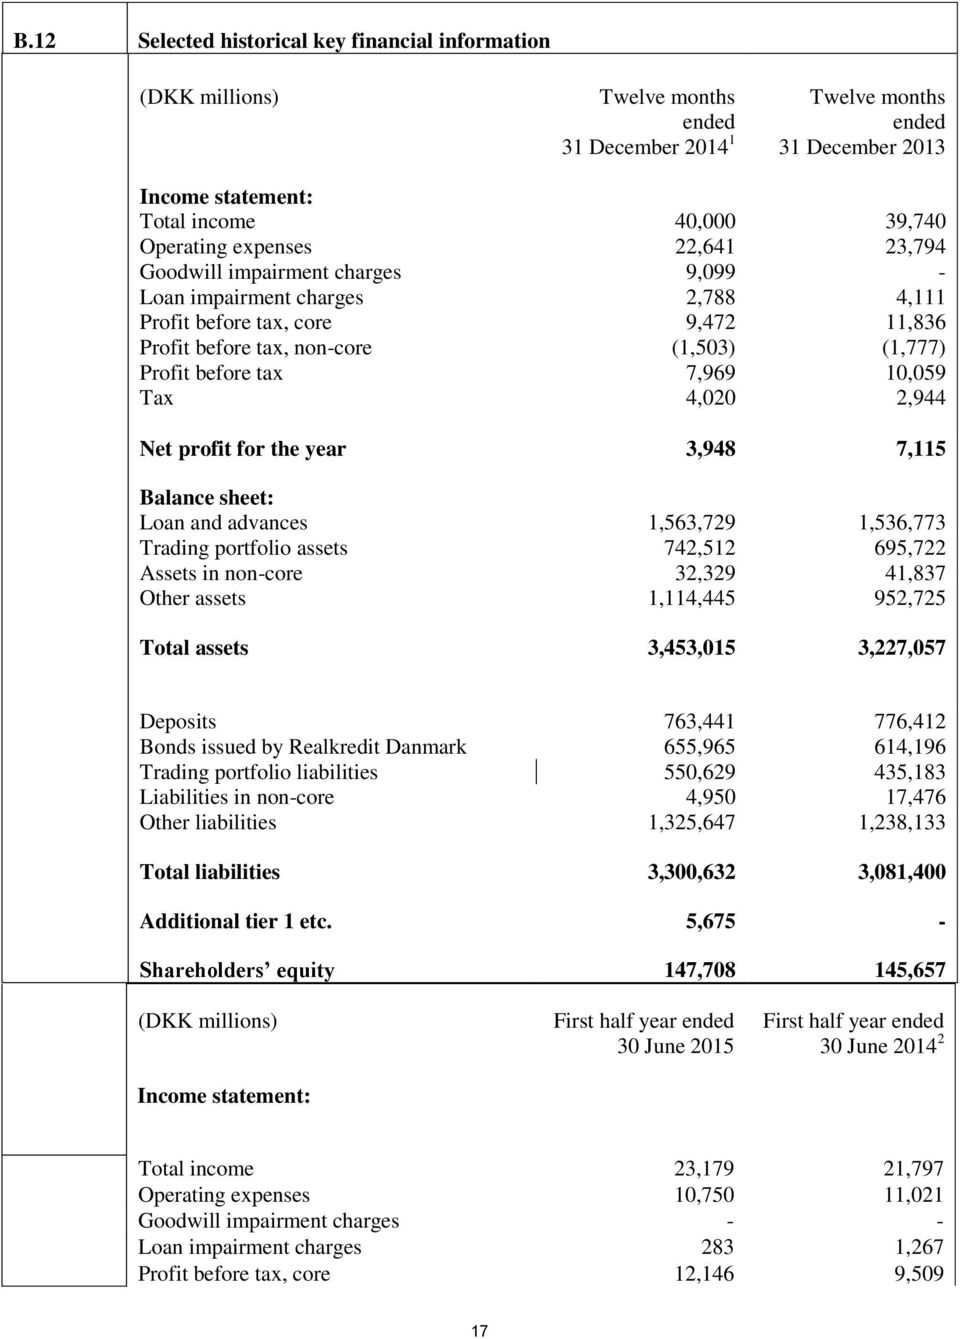 10,059 Tax 4,020 2,944 Net profit for the year 3,948 7,115 Balance sheet: Loan and advances 1,563,729 1,536,773 Trading portfolio assets 742,512 695,722 Assets in non-core 32,329 41,837 Other assets